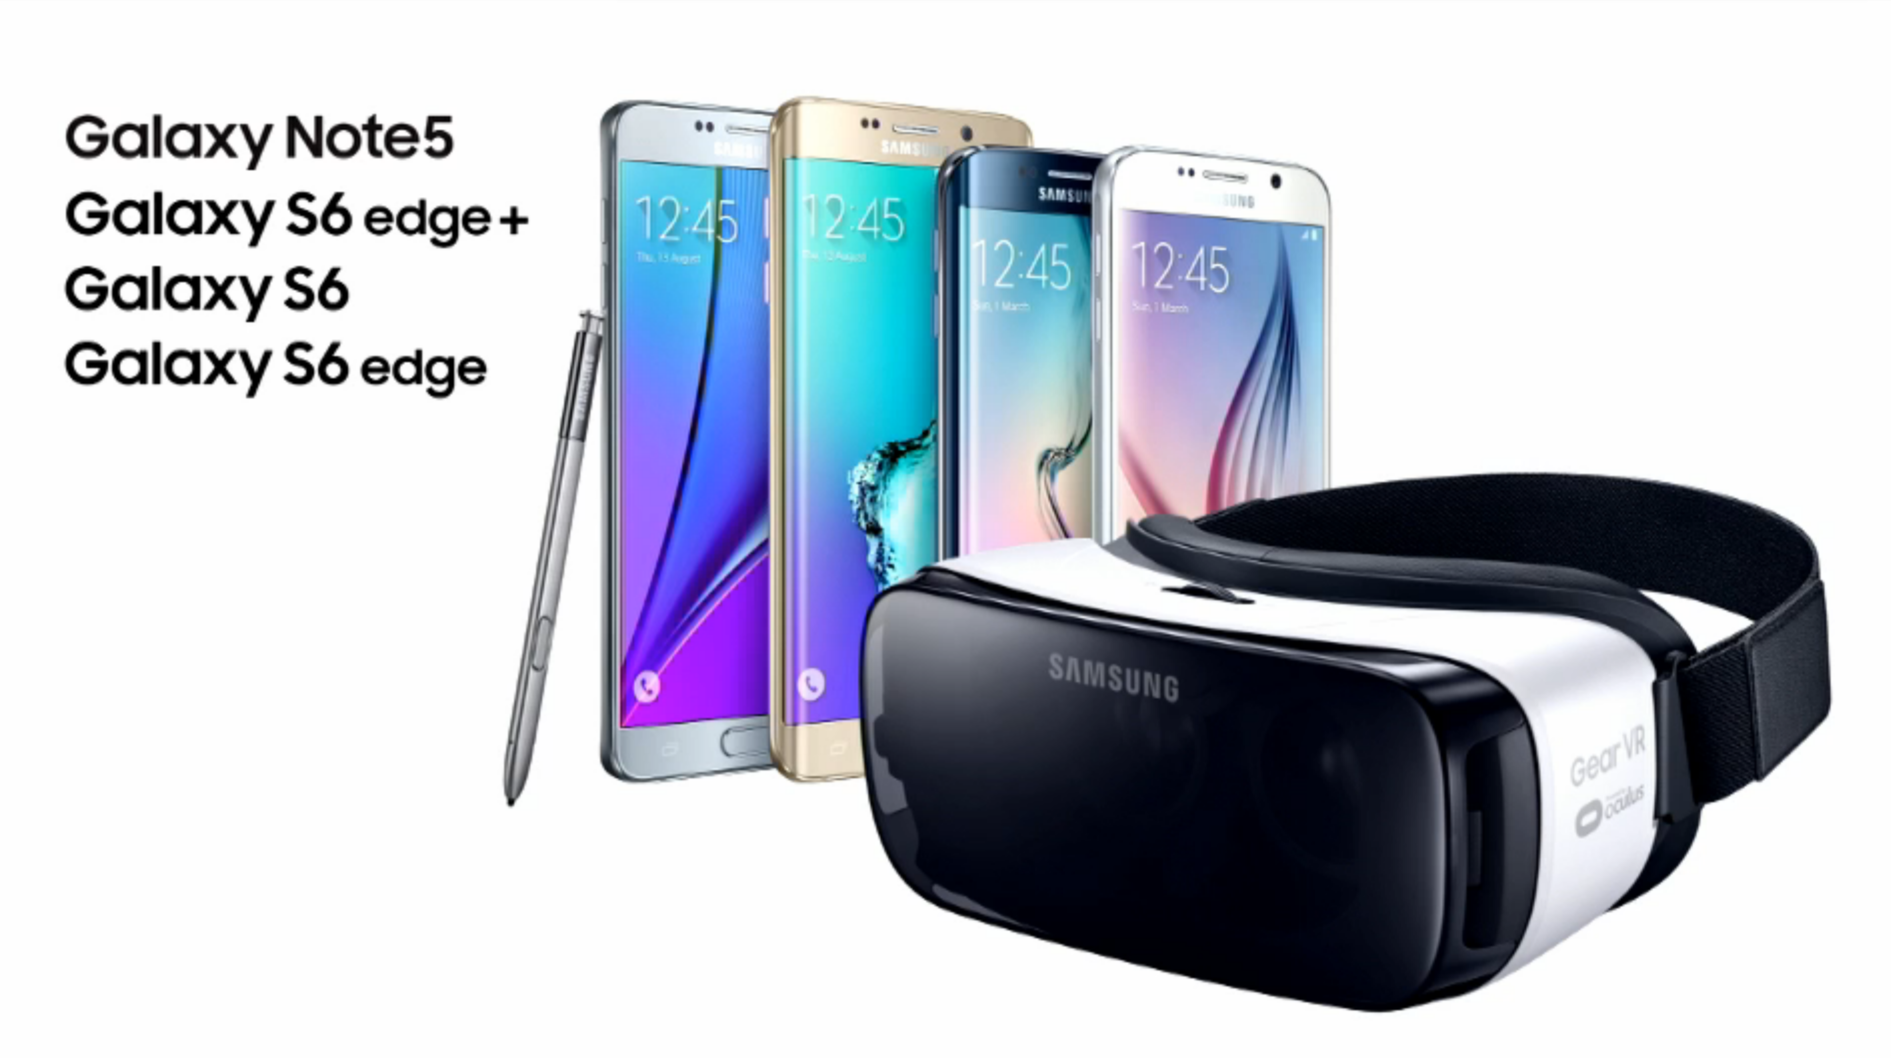 d5f284afbc60 Samsung s new Gear VR virtual reality headset only costs  99